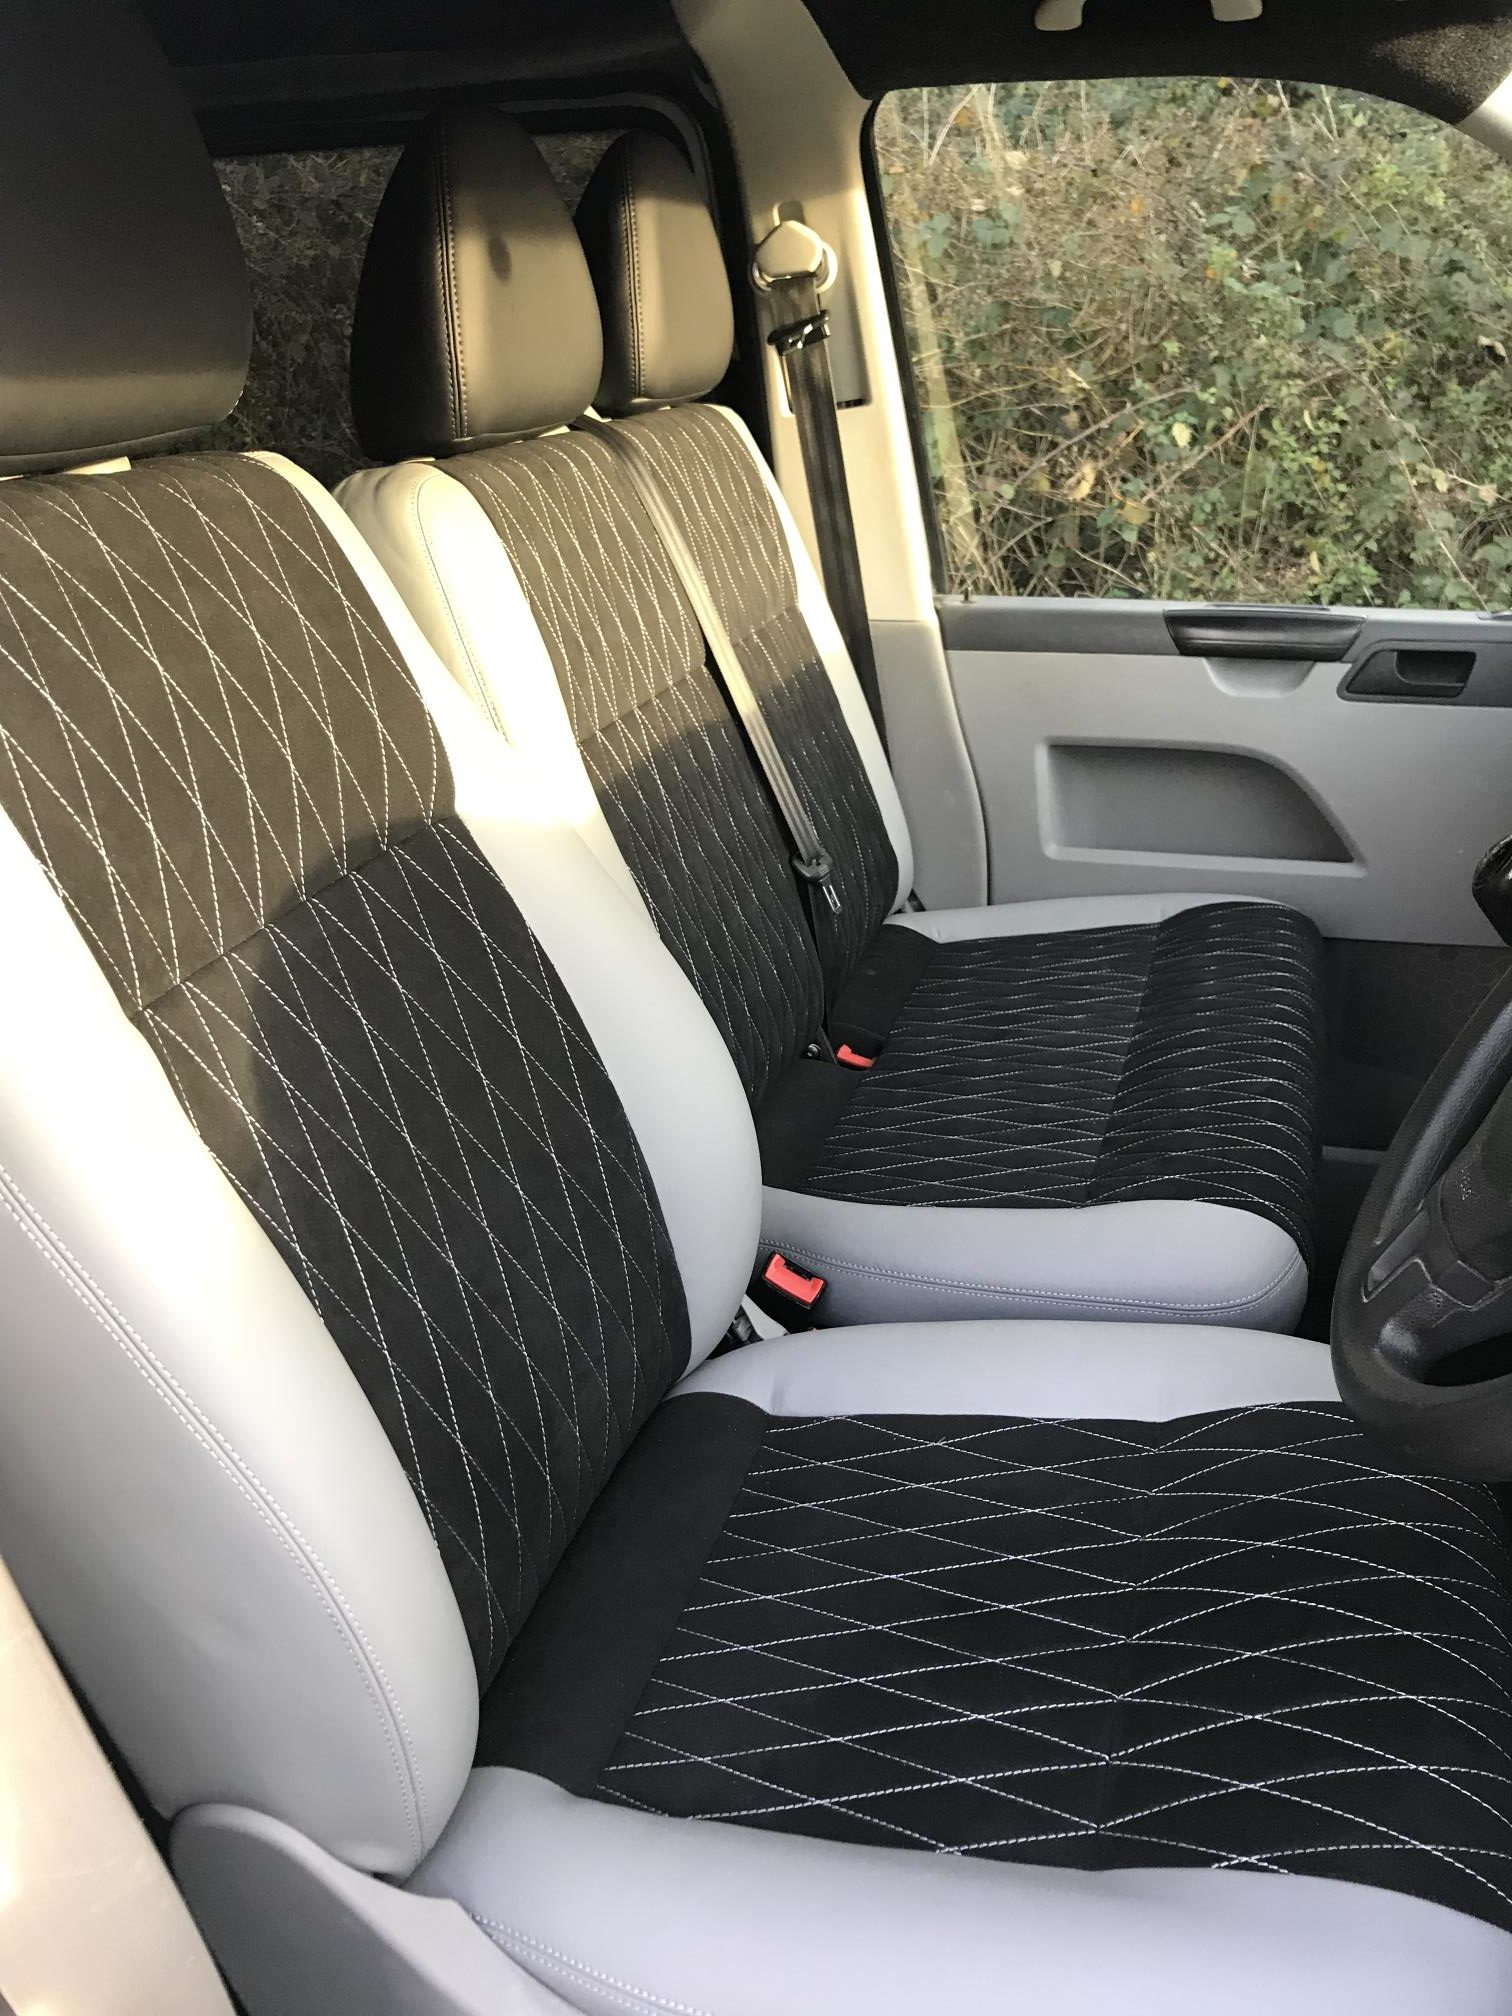 Upholstery (Grey and Black)